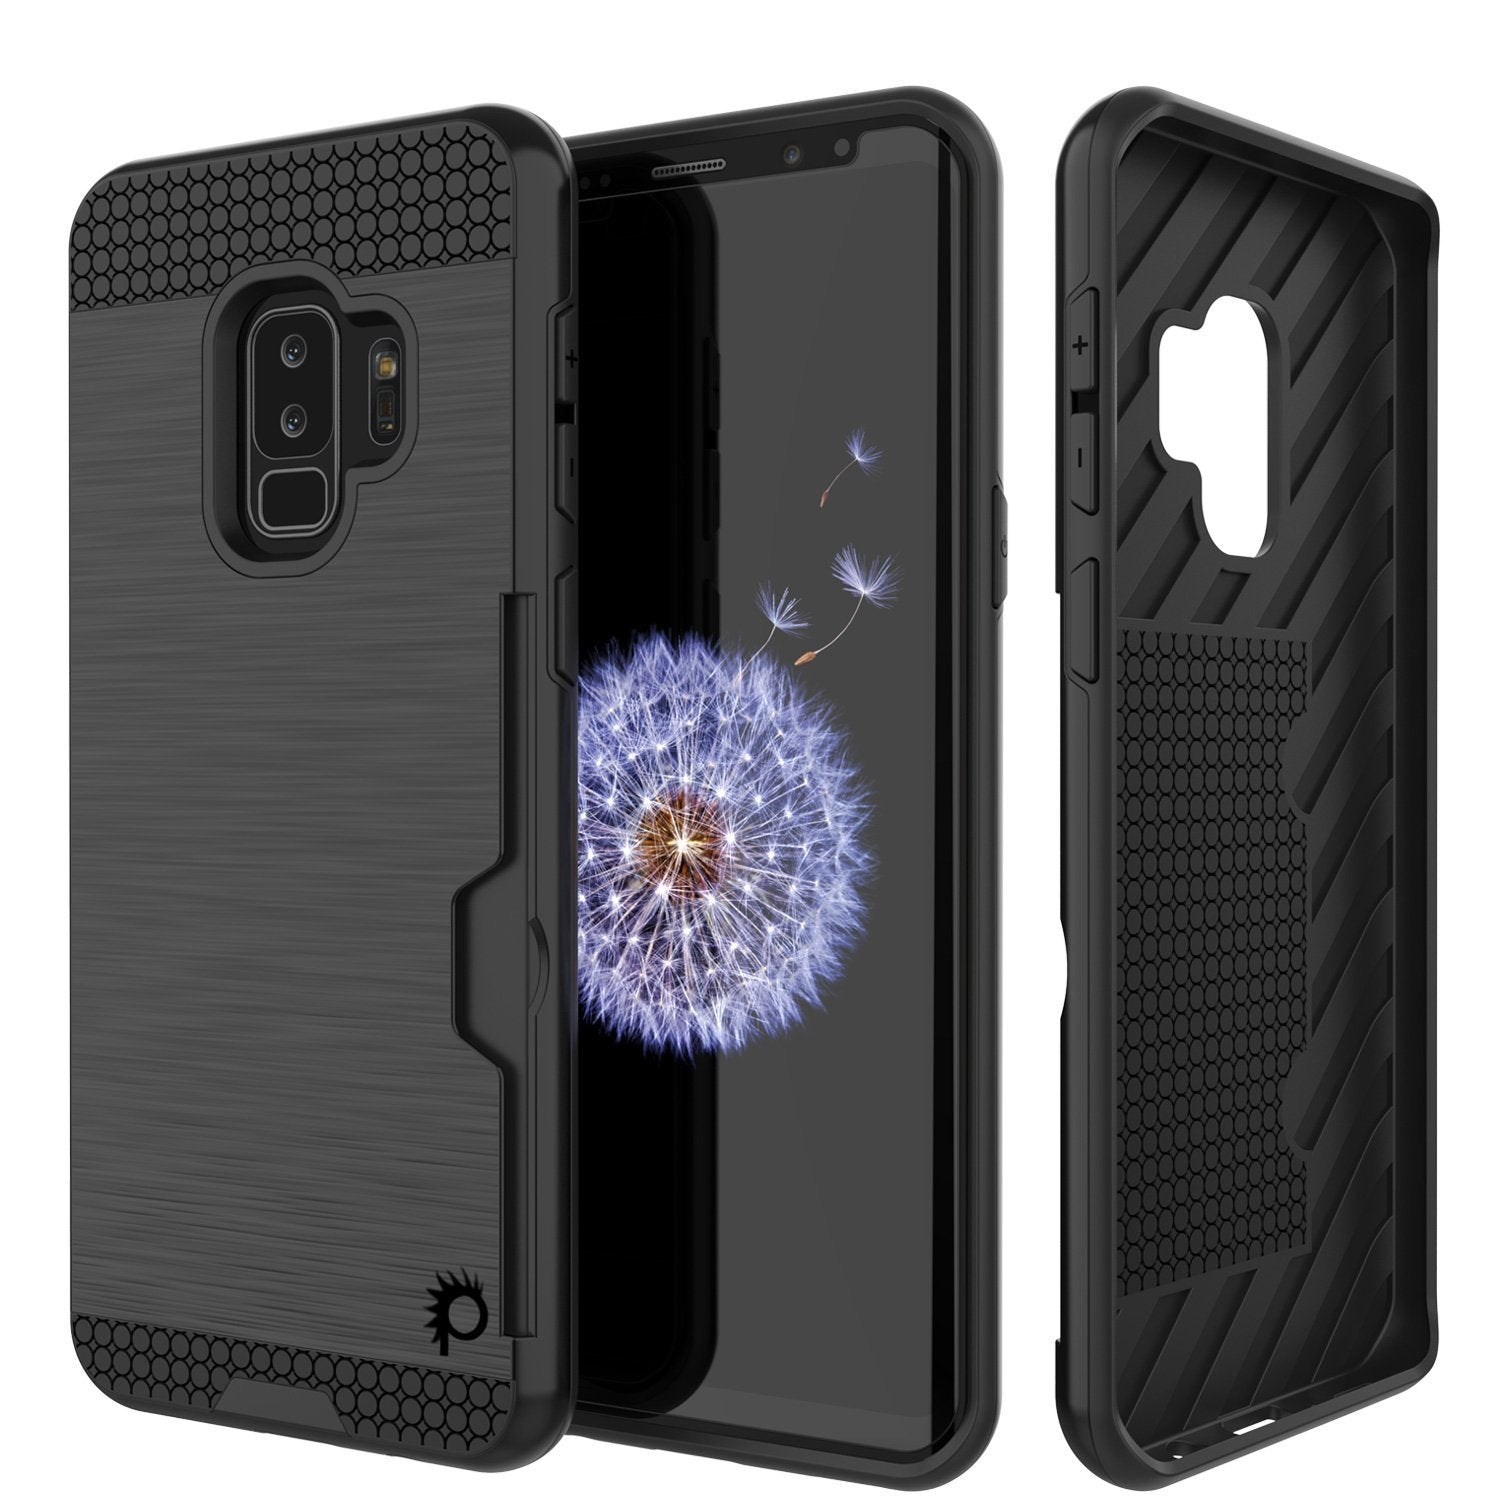 Galaxy S9 Plus Punkcase Slot Series w/Integrated Anti-Shock, Black